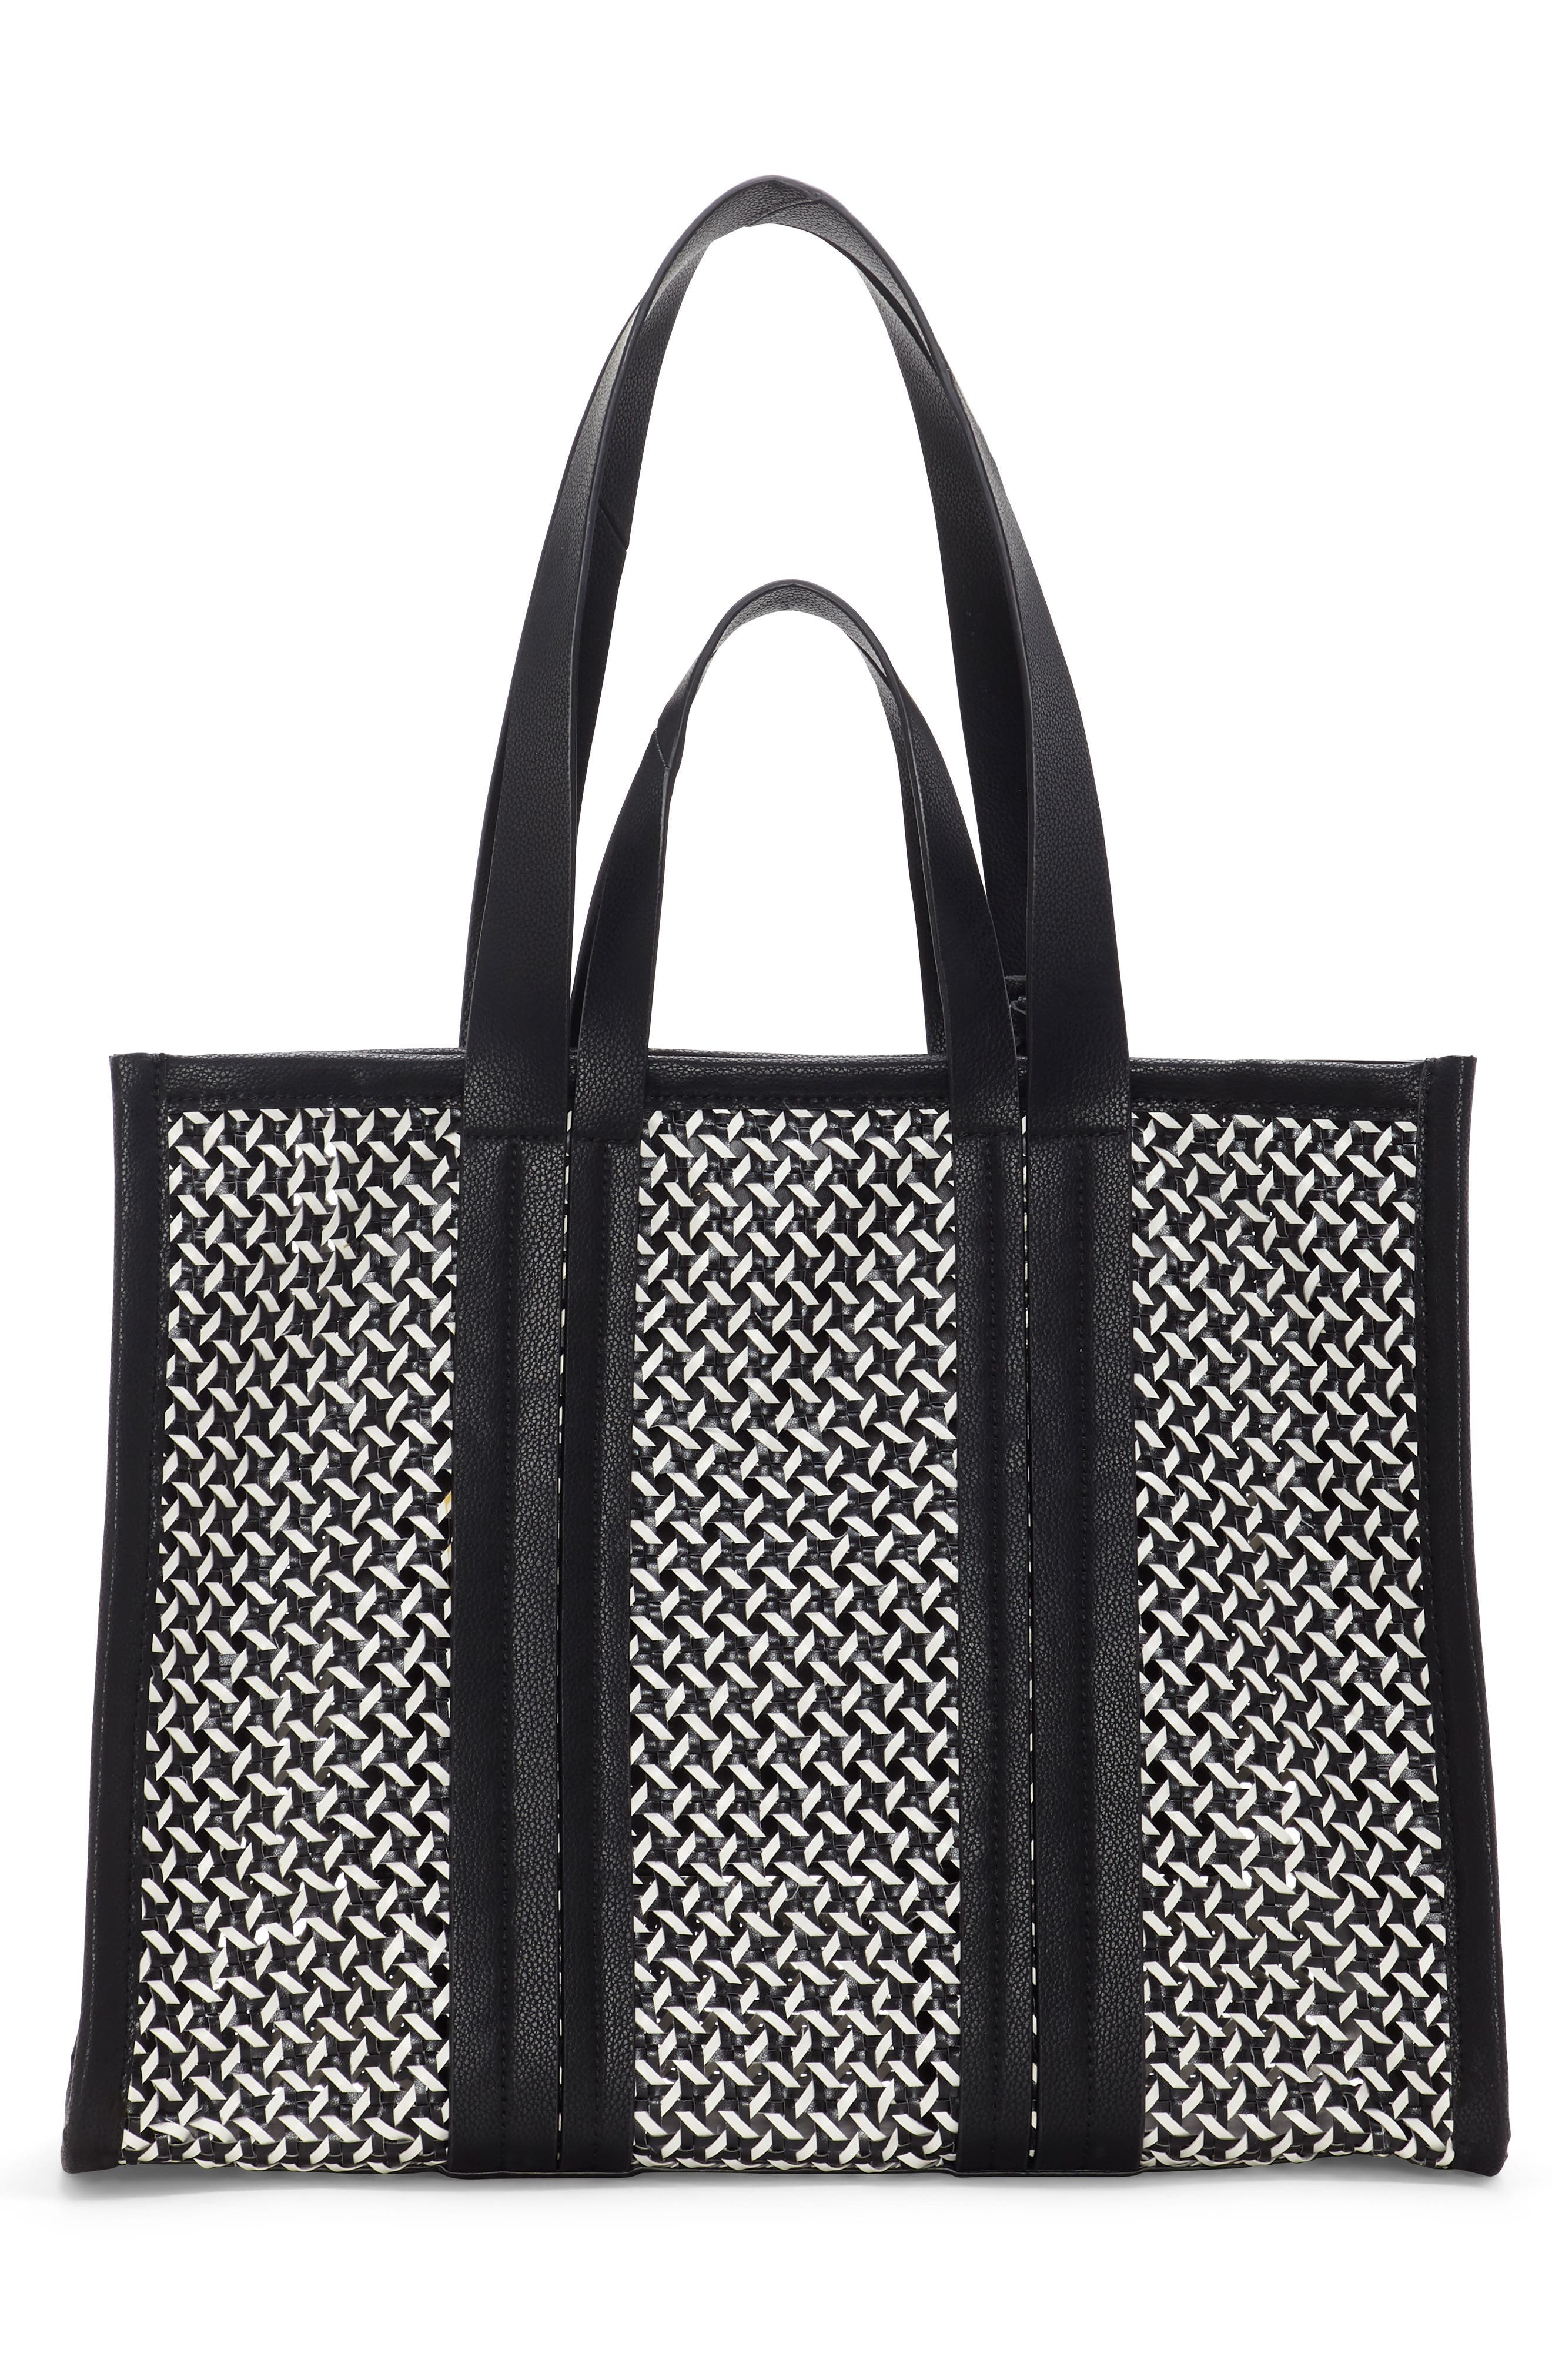 VINCE CAMUTO, Indra Woven Rattan & Leather Tote, Alternate thumbnail 2, color, 001